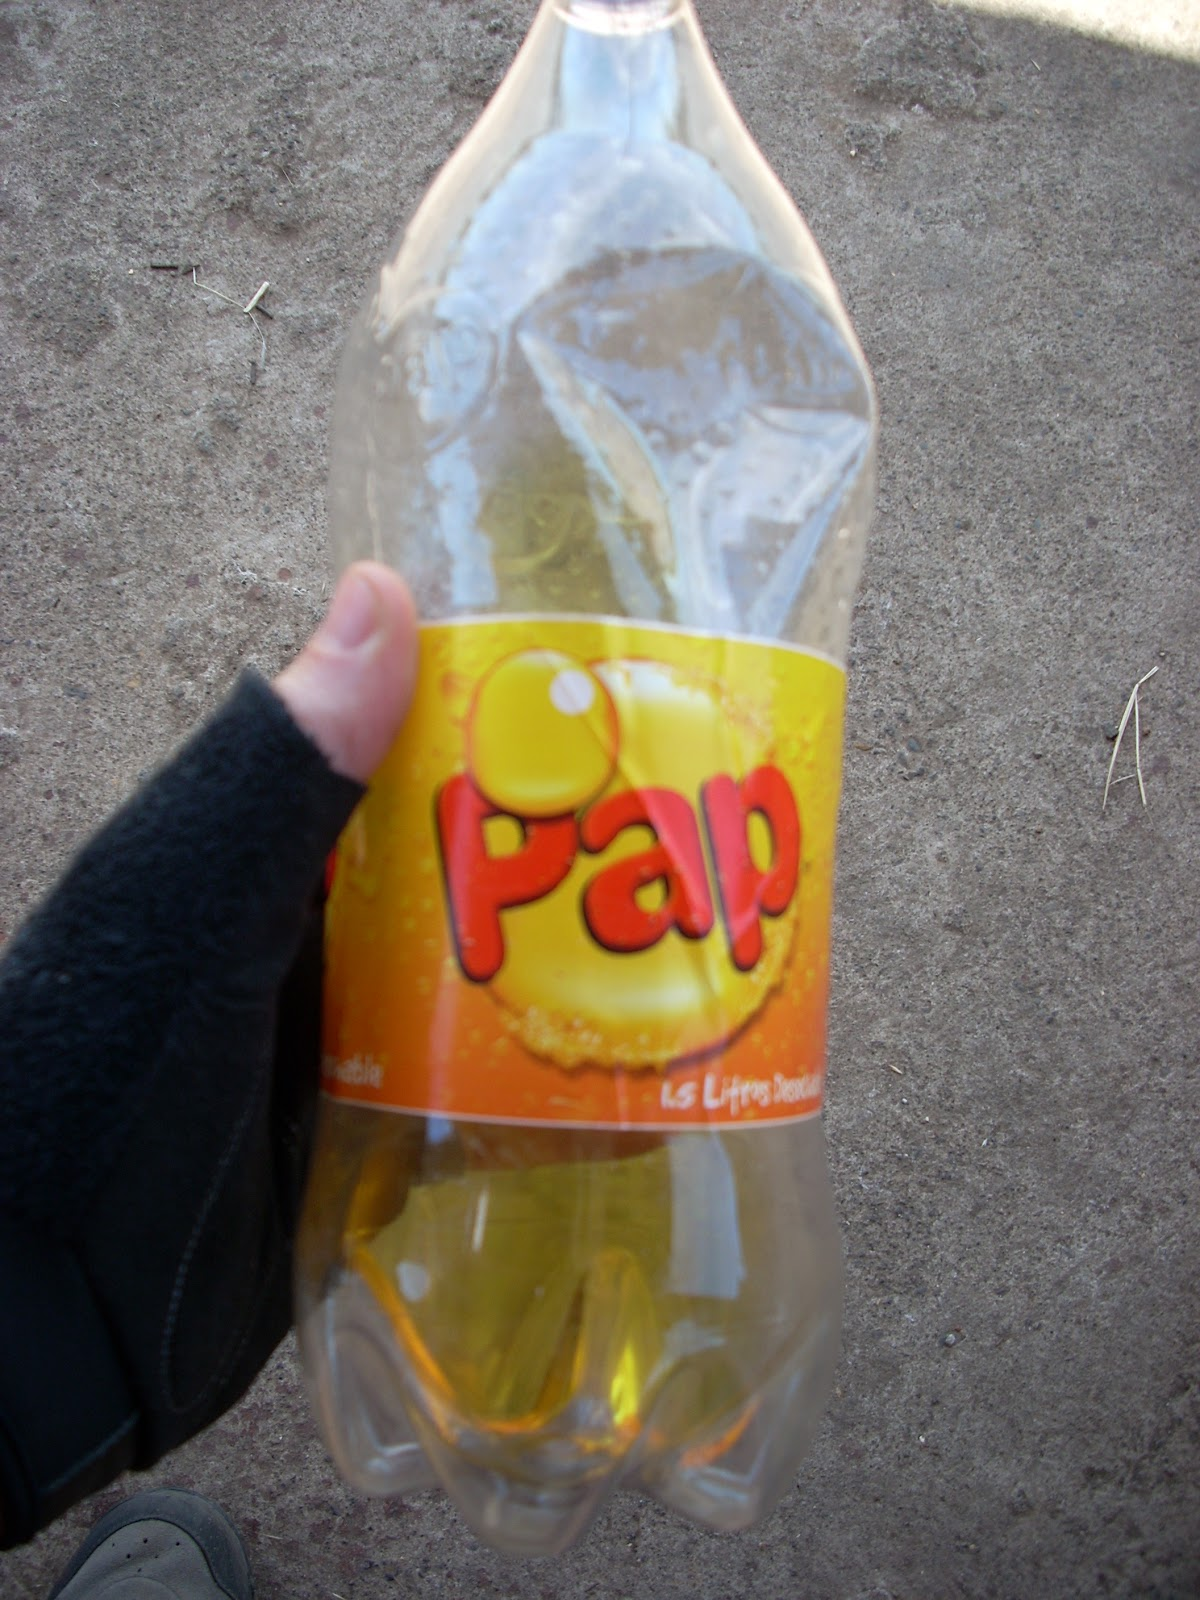 I used to be able to drink several litres a day of fluourescent soft drinks, but I seem to have lost my touch - it took me days to get through this bottle